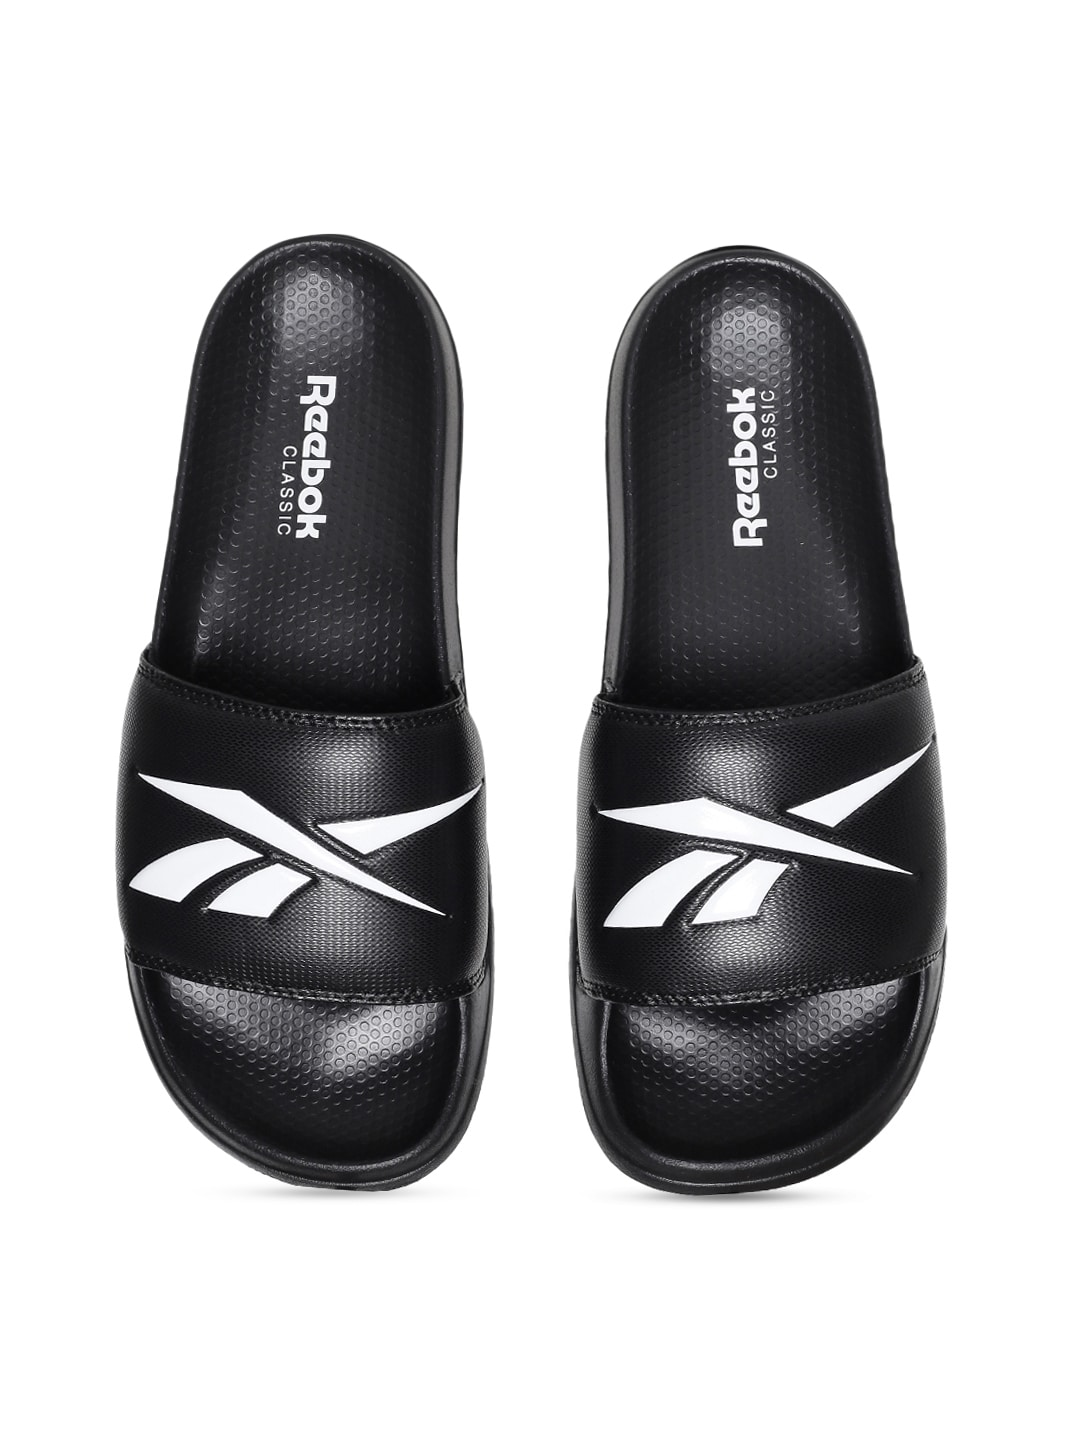 8036af9546a6 Reebok Slide Flip Flops - Buy Reebok Slide Flip Flops online in India